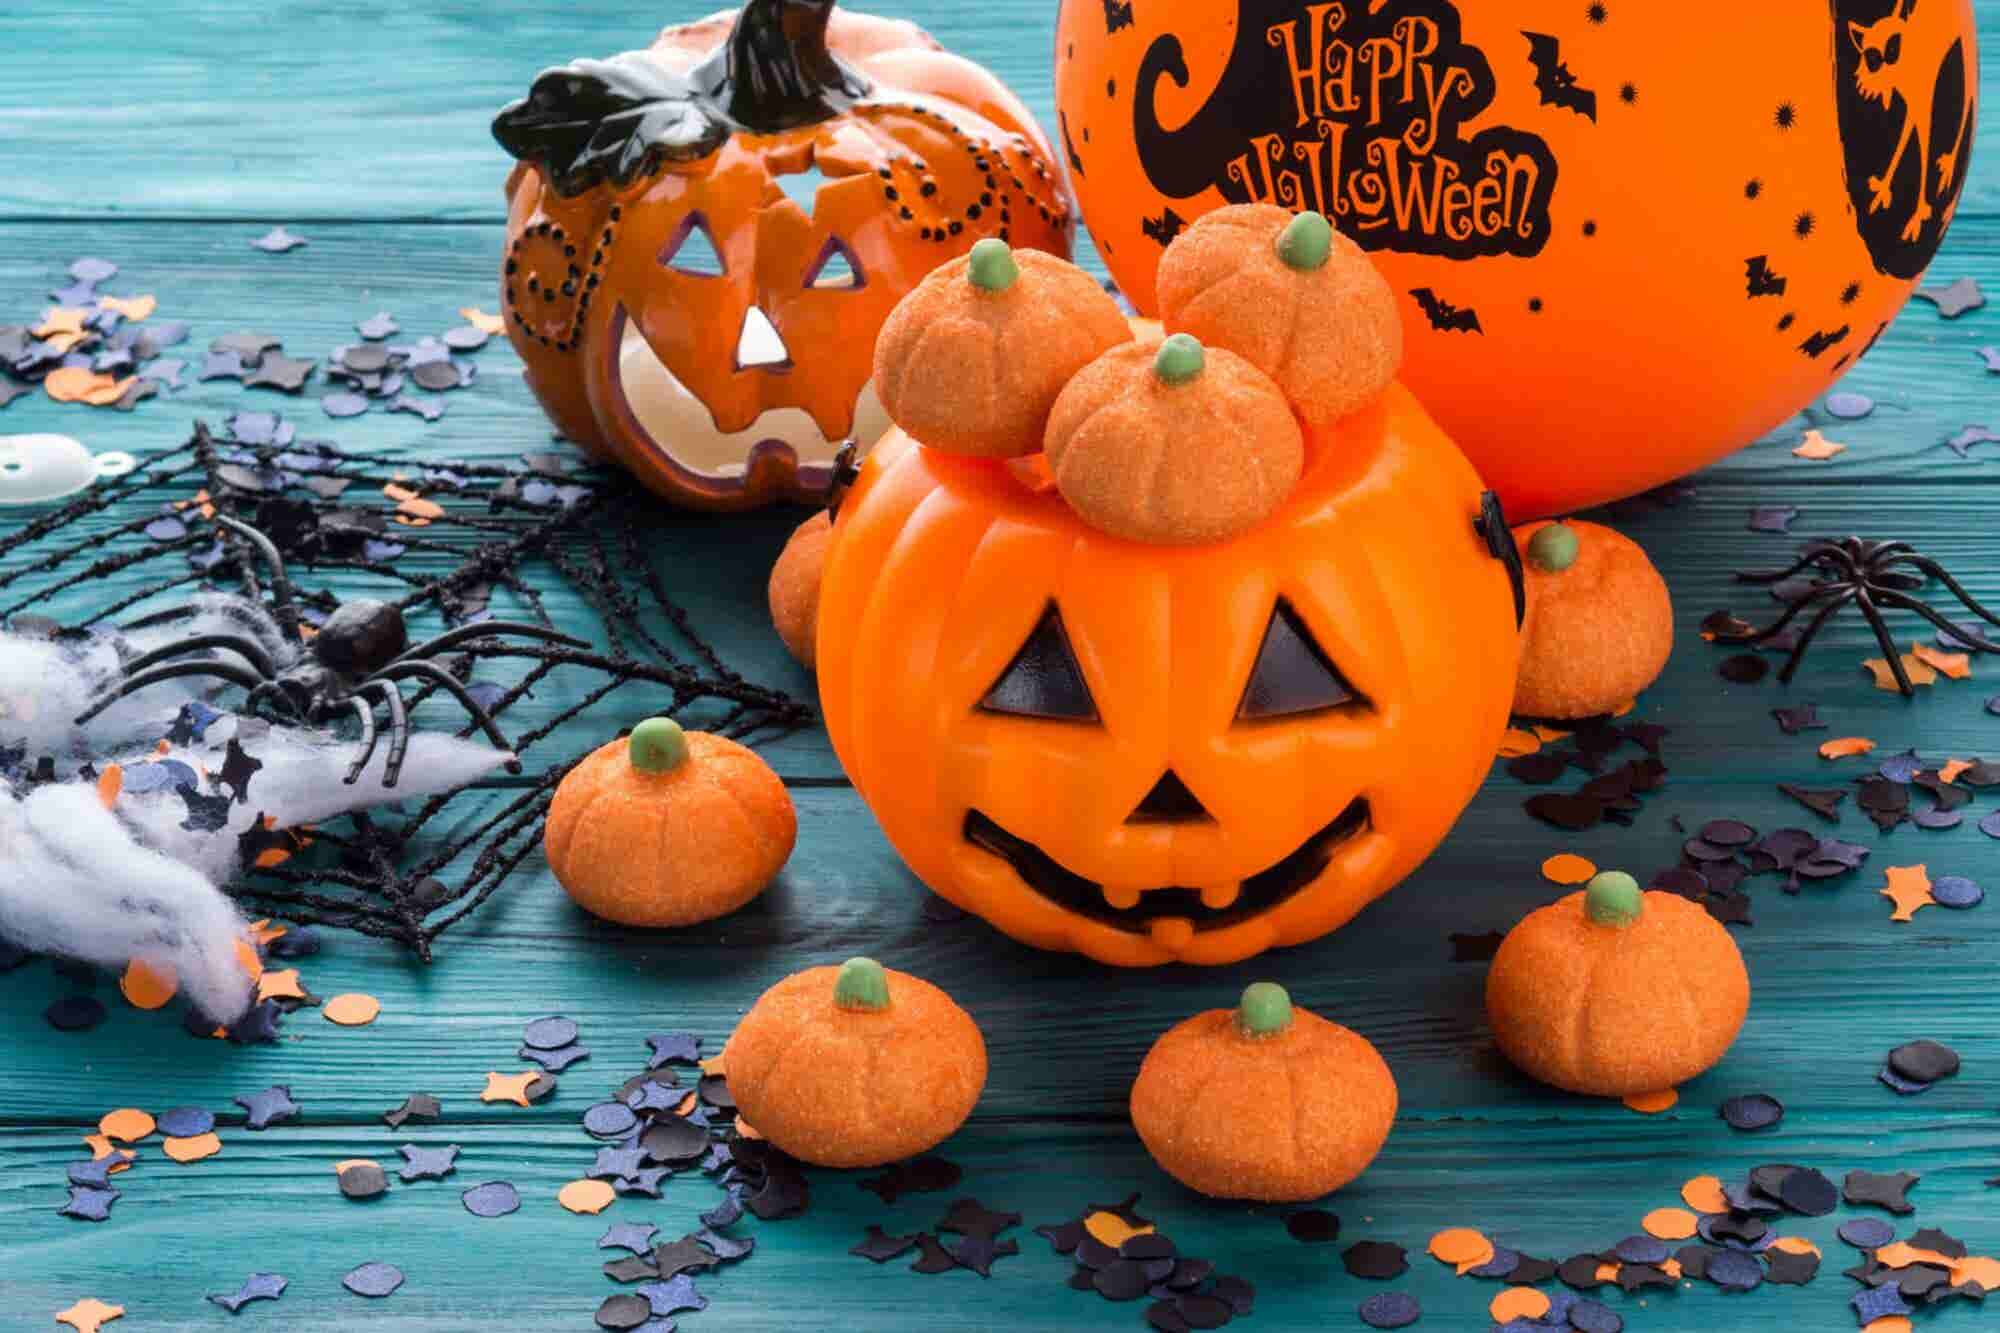 5 Fun Halloween Marketing Ideas for Your Small Business